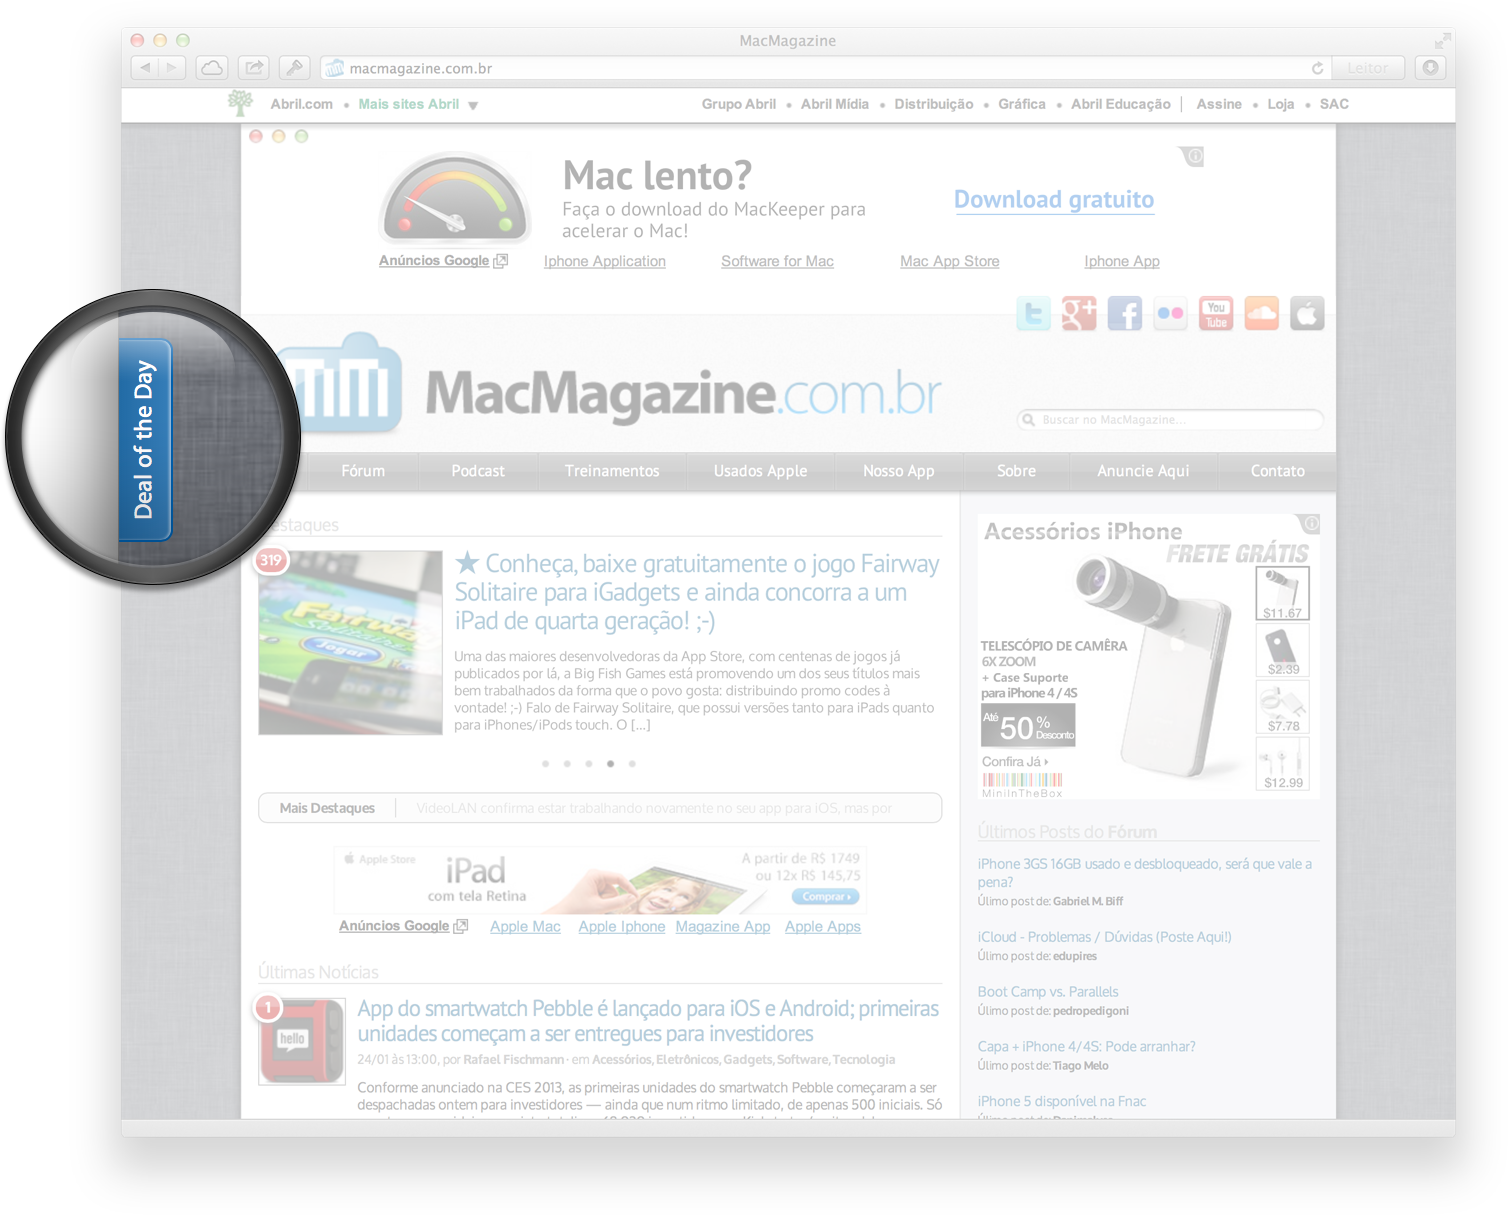 Deal of the Day - MacMagazine